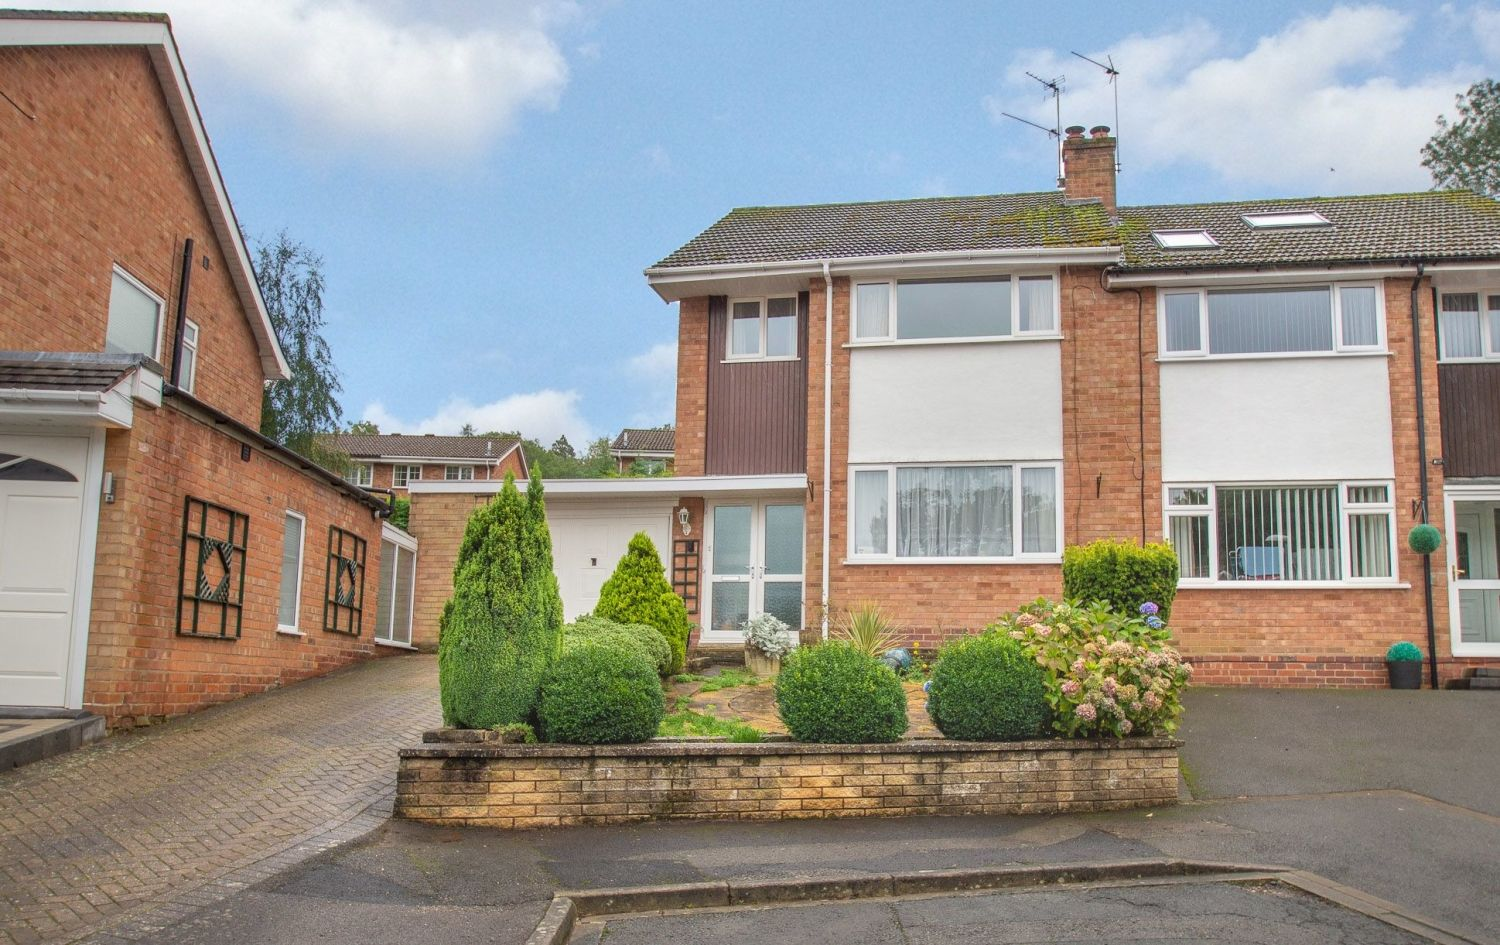 3 bed semi-detached for sale in Vicarage Crescent, Redditch 1